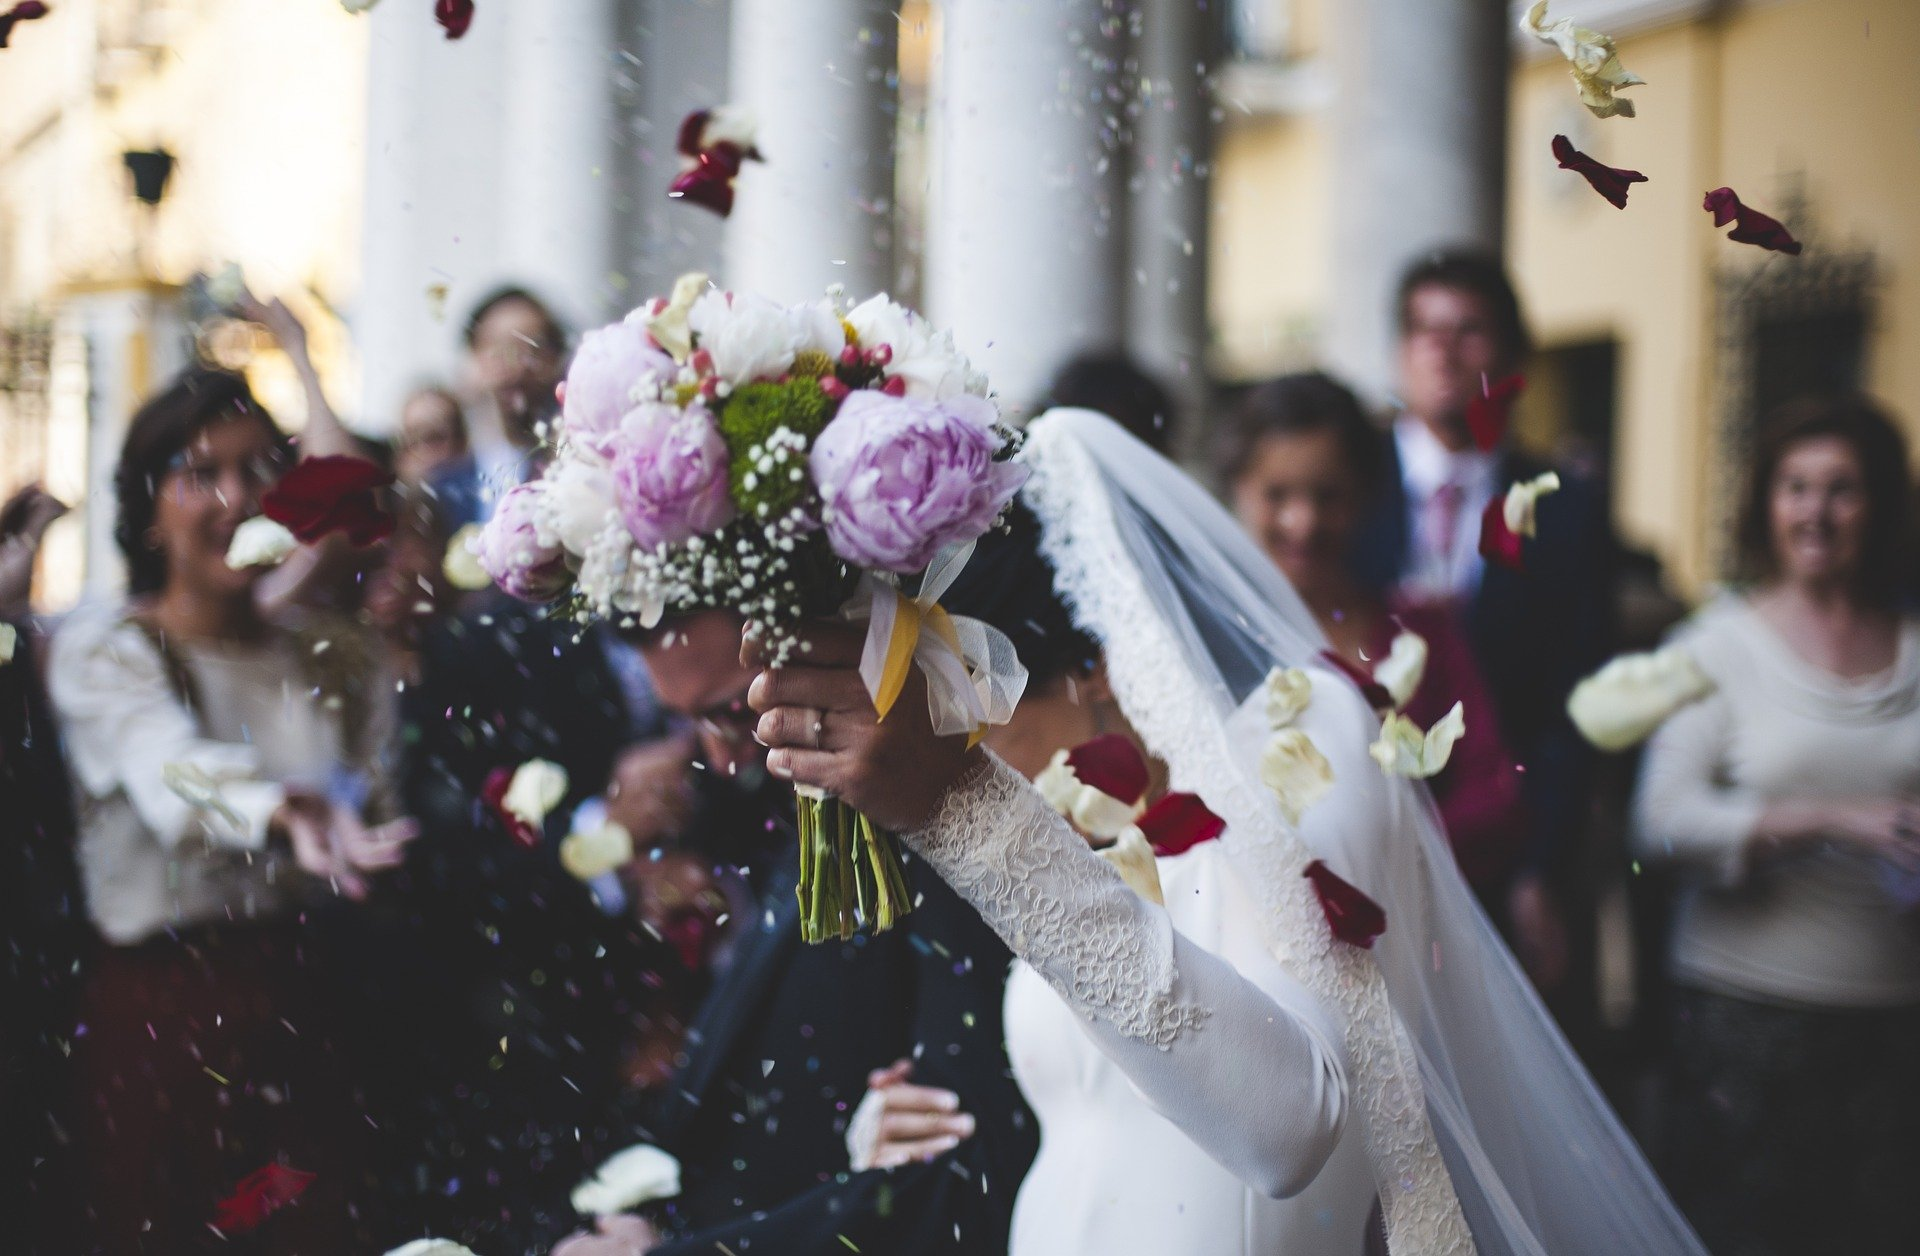 Over-the-Top Wedding Ideas To Try For Your Big Day